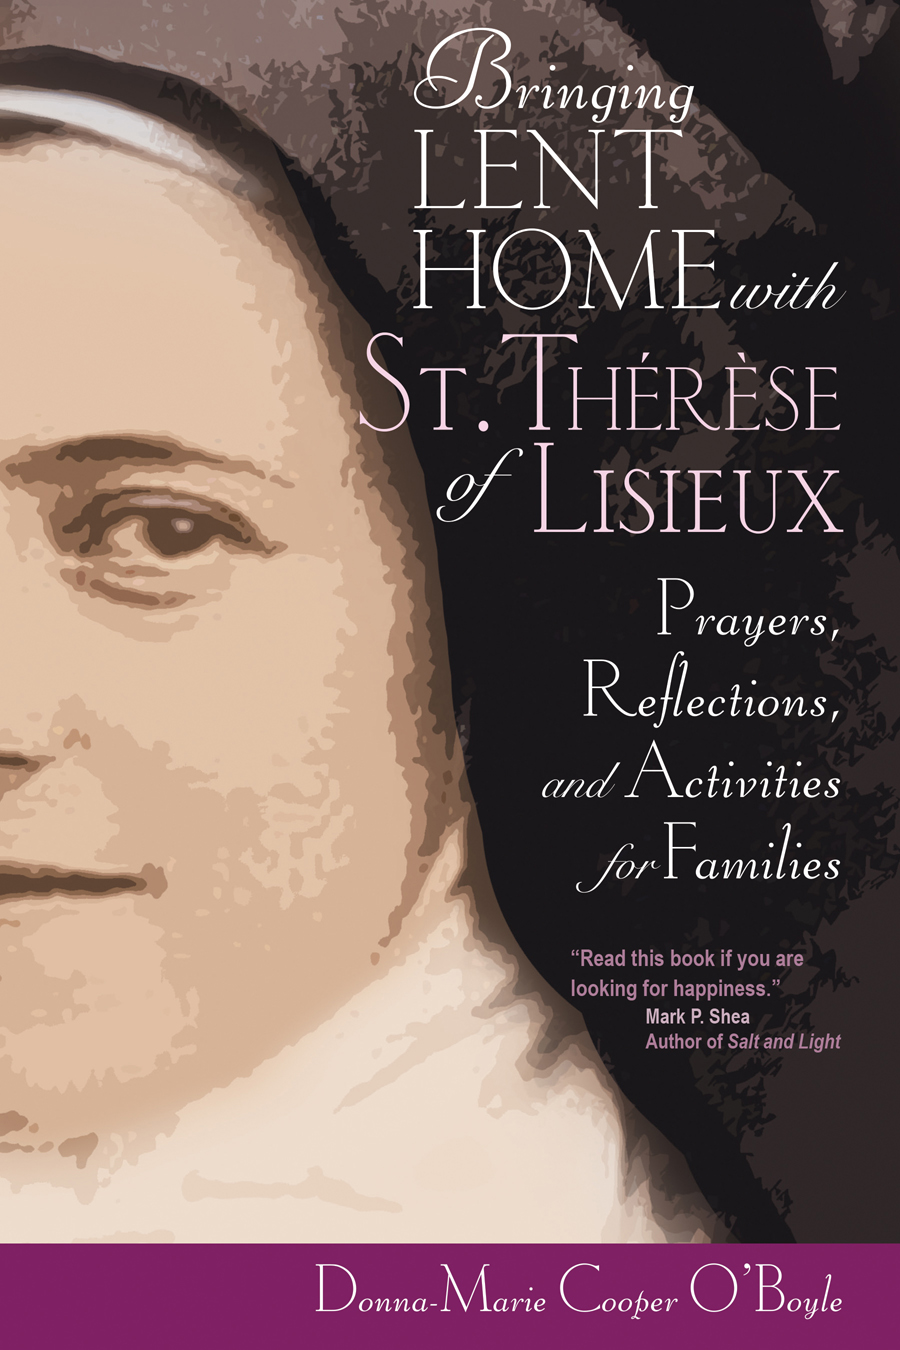 Bringing Lent Home with St. Thérèse of Lisieux